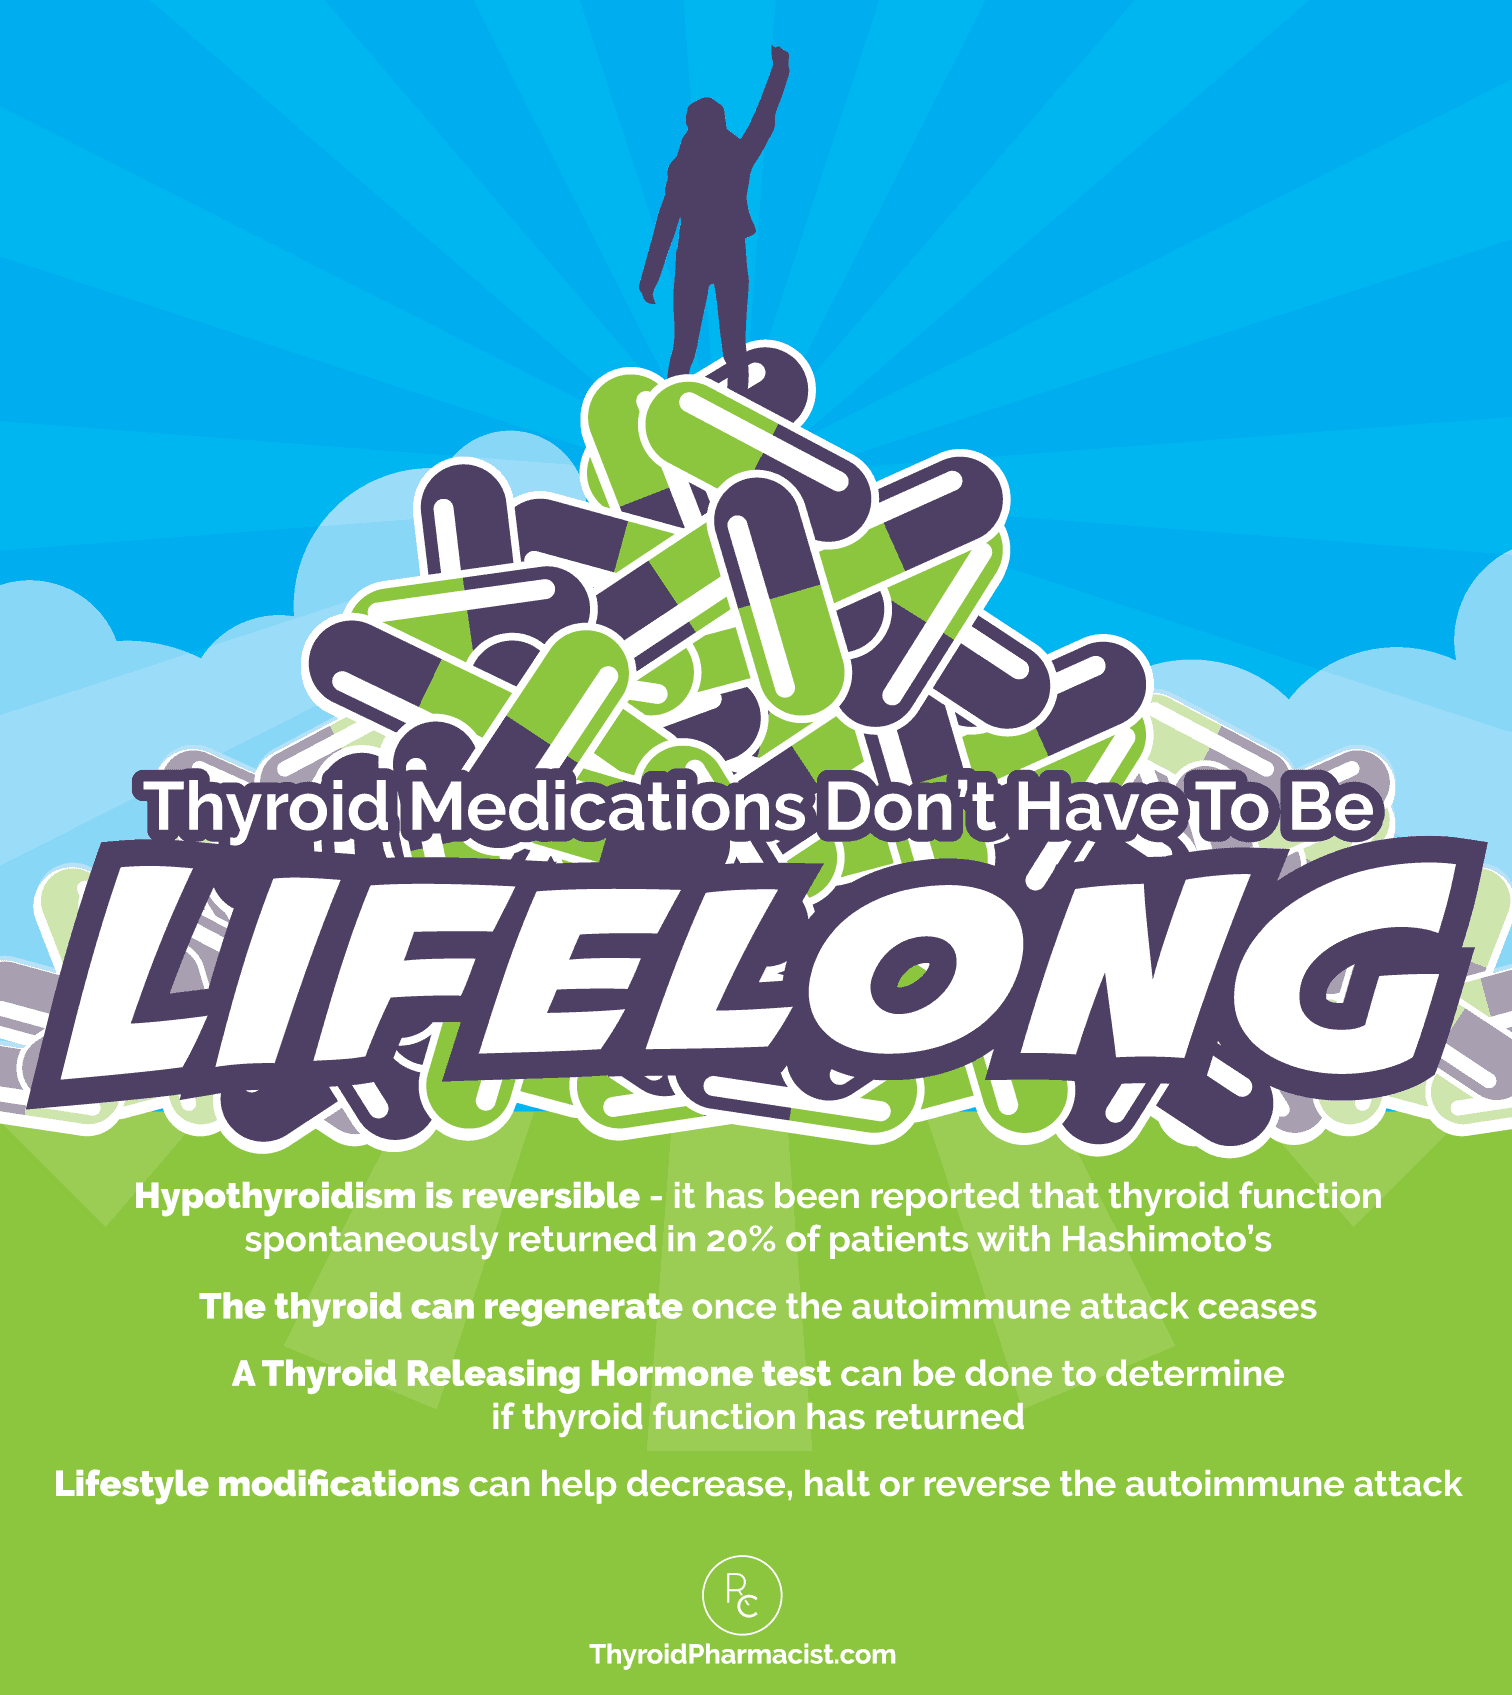 Thyroid Medication Lifelong